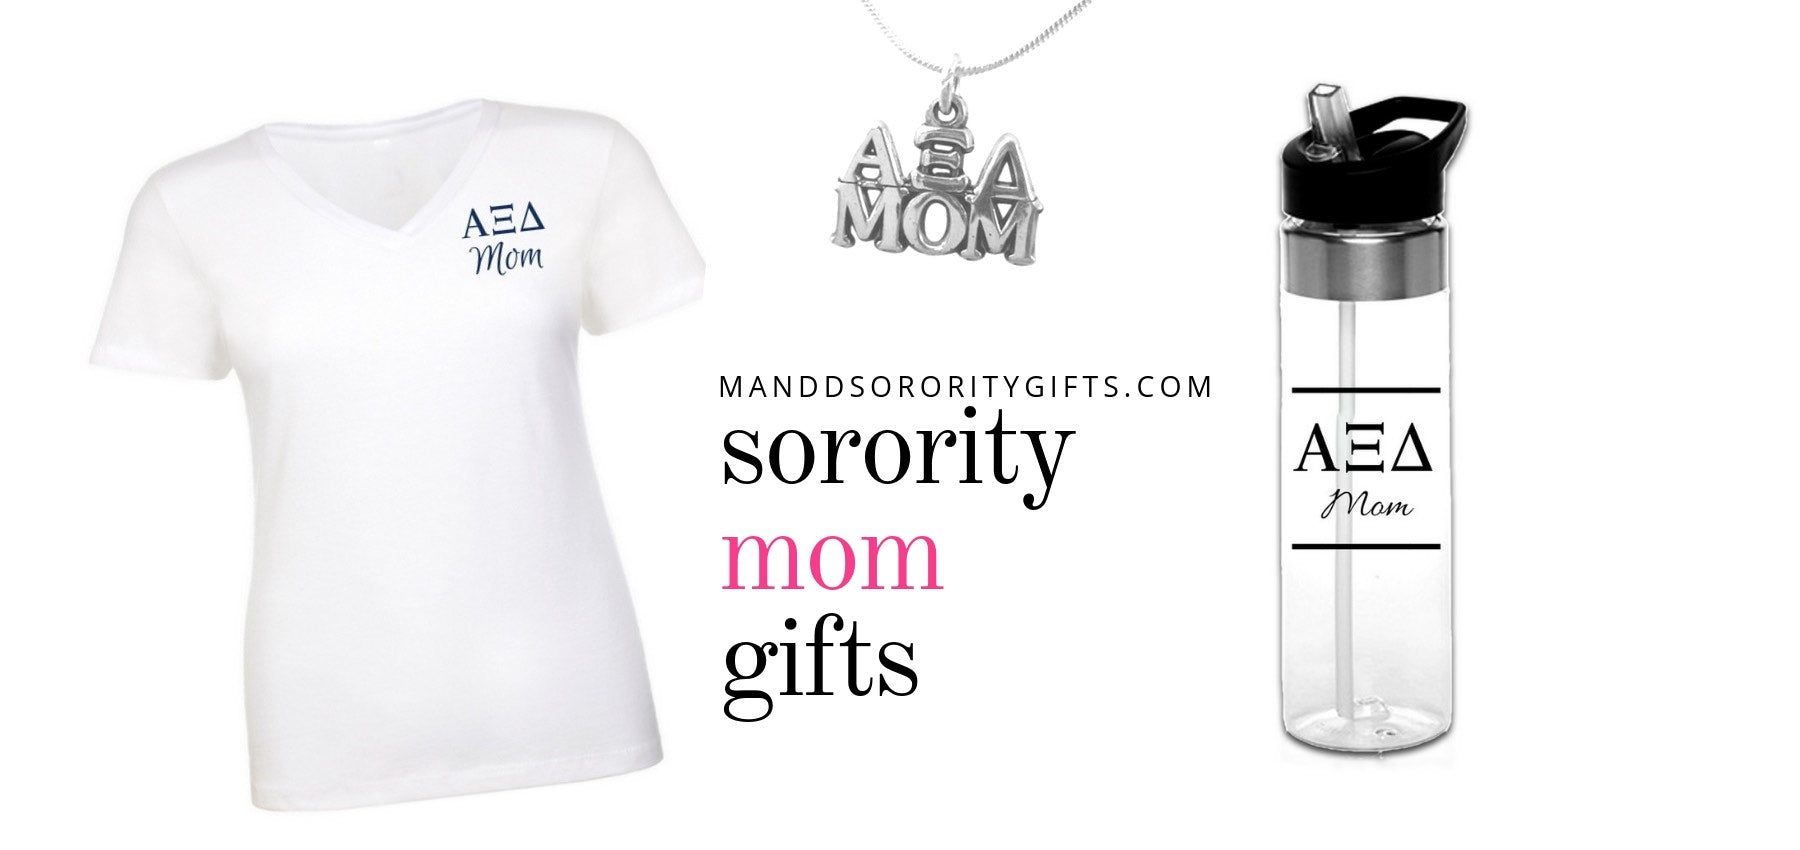 Alpha Xi Delta Mom Gifts I 12 Reasons Moms Are the Best